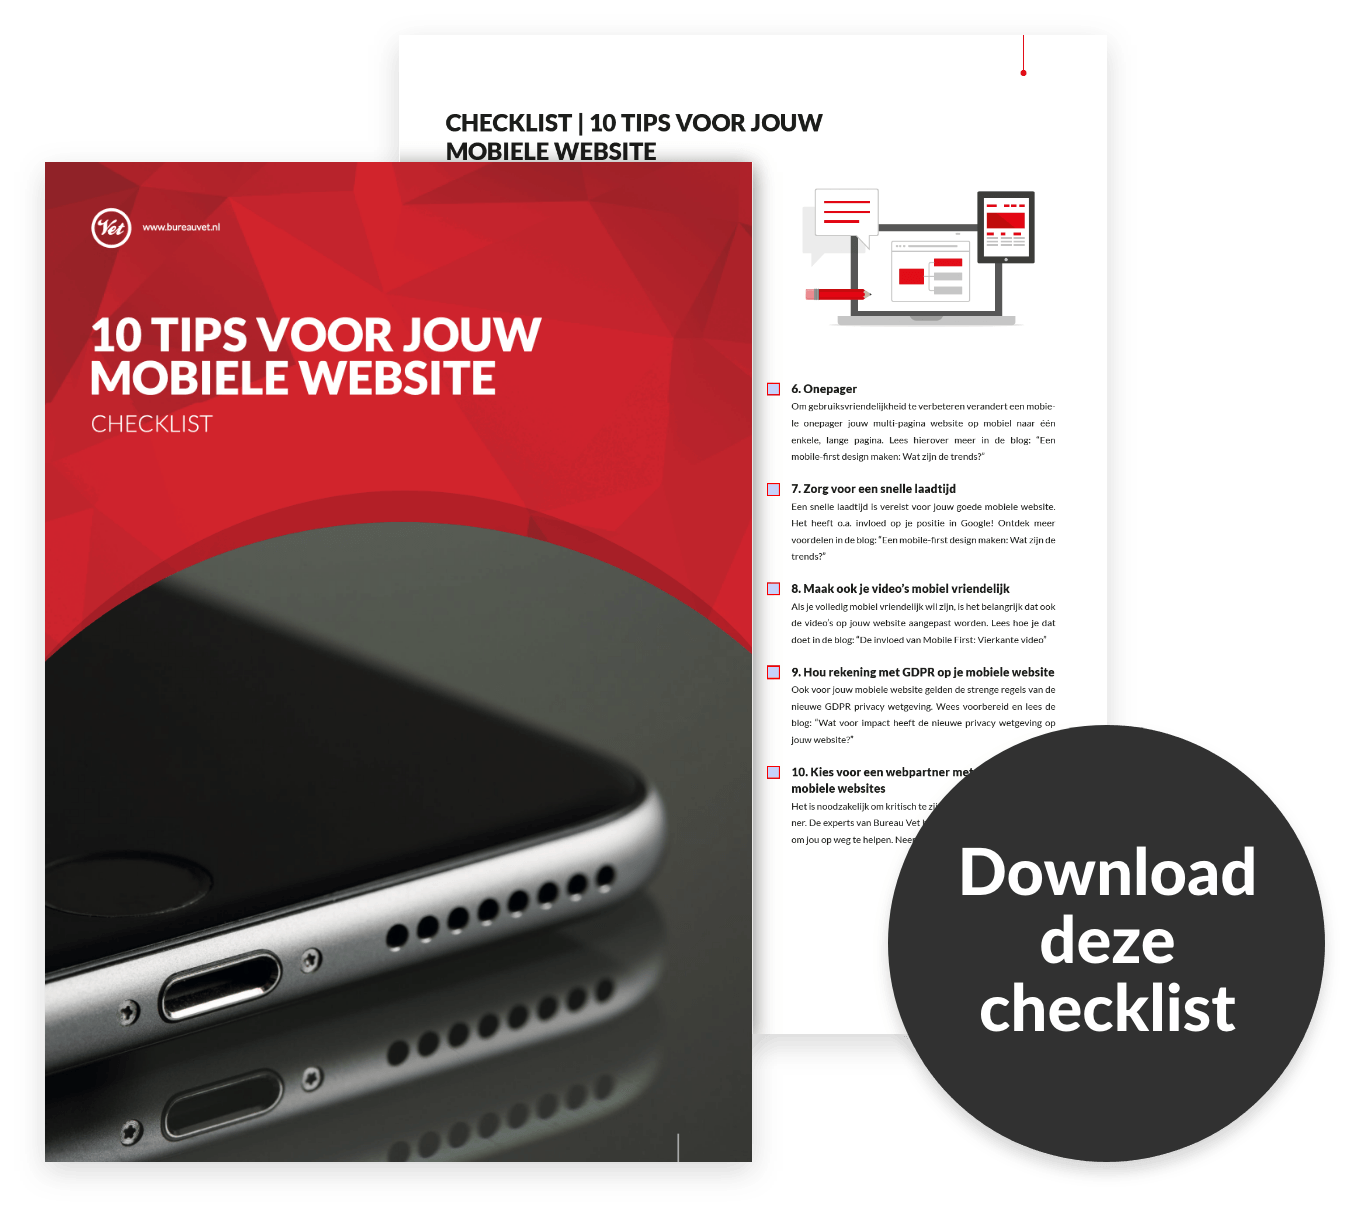 BureauVet-onlinemarketing-inboundmarketing-CTA-10-mobielewebsite-checklist-10-tips-voor-jouw-mobiele-website